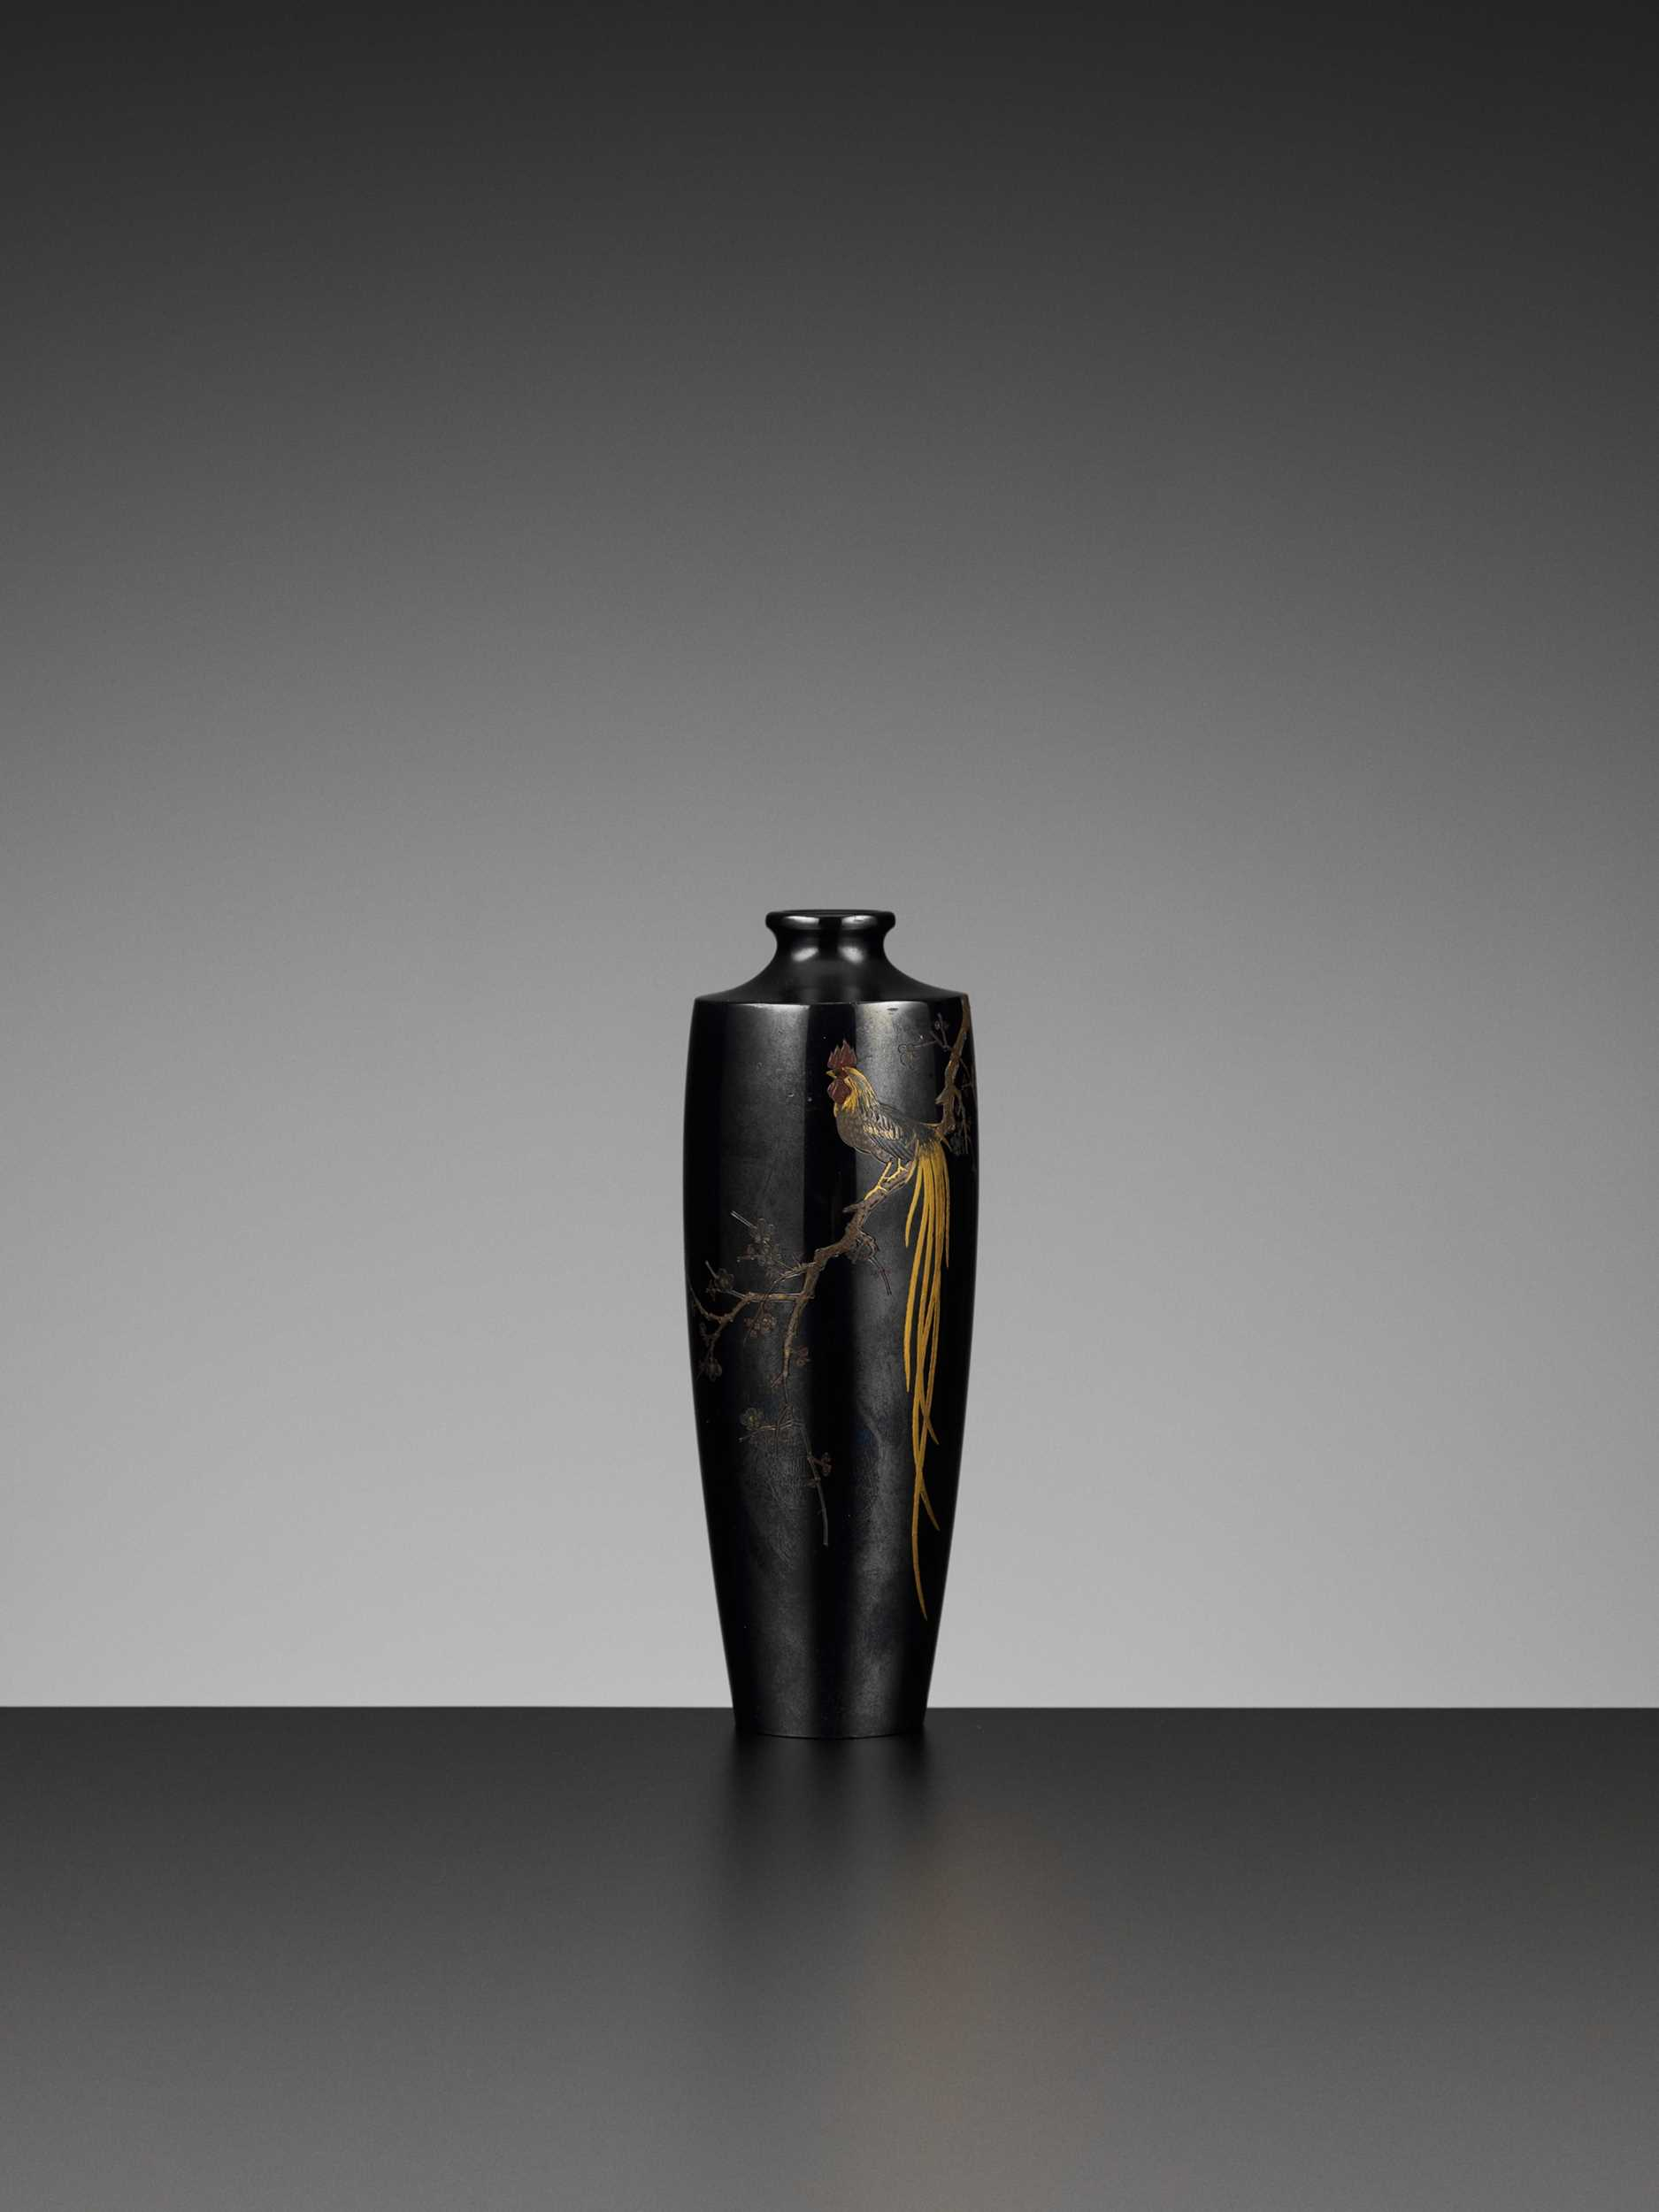 Lot 2 - NOGAWA: A METAL VASE DEPICTING A COCKEREL